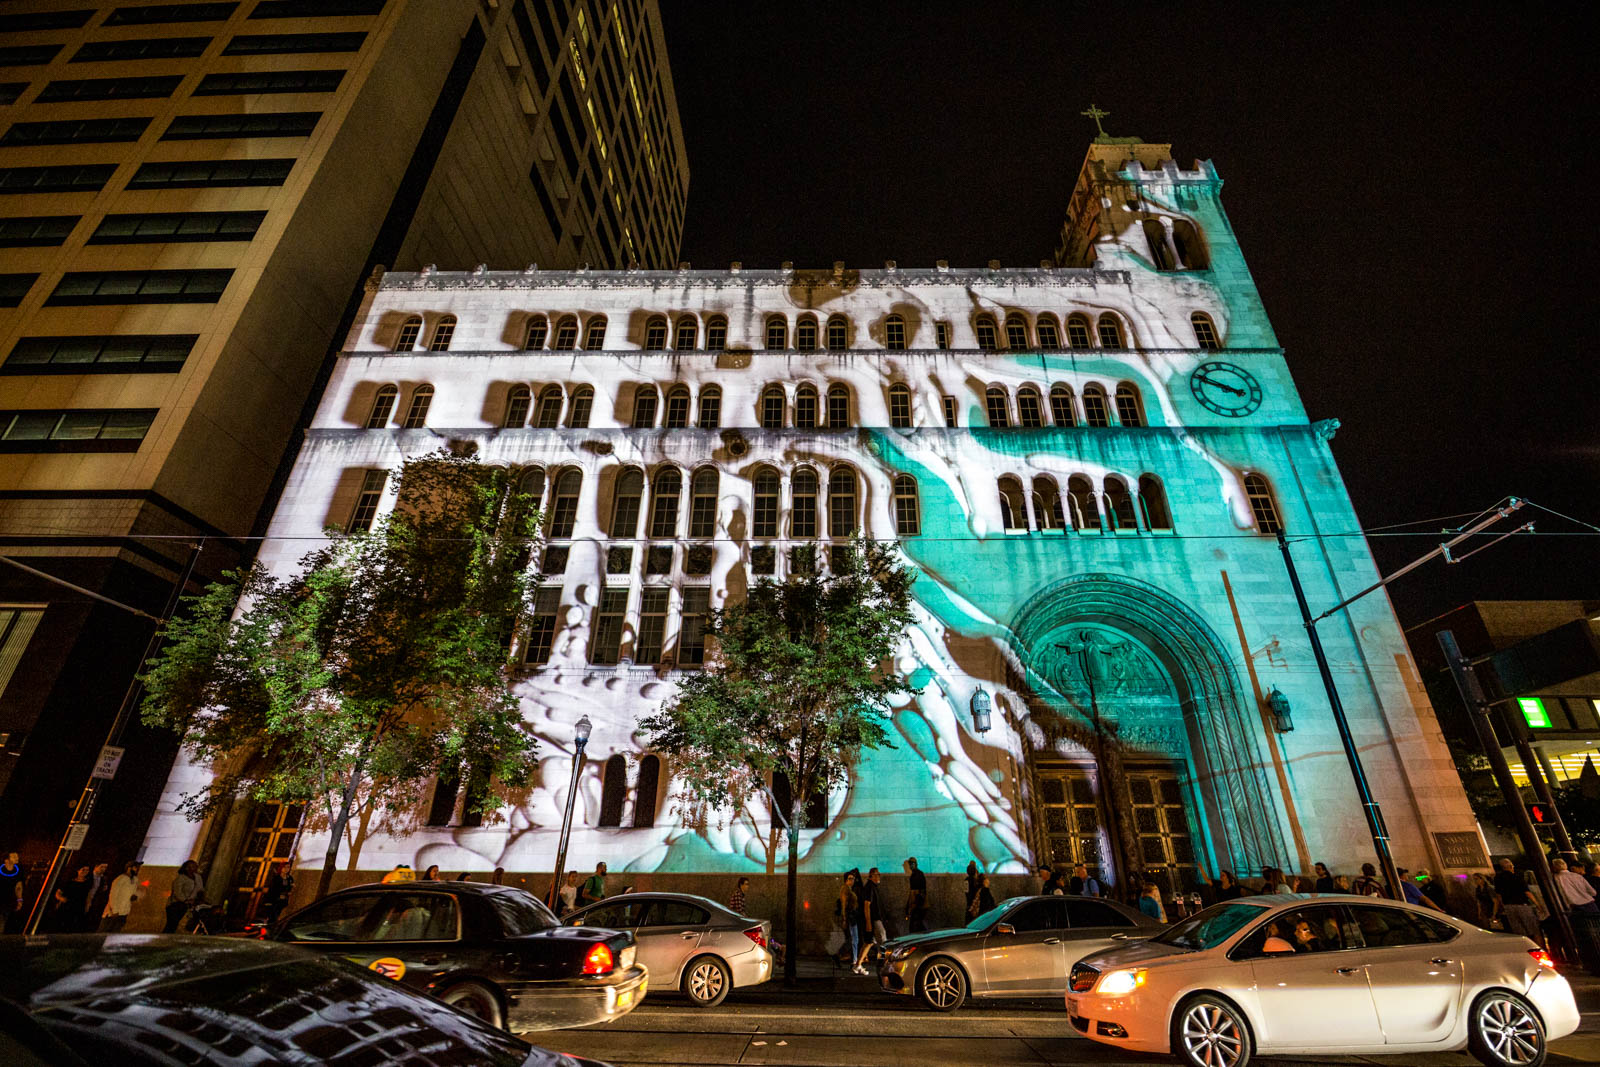 PICTURED NEIGHBORHOOD: Downtown / St. Louis church at 8th and Walnut Streets is covered in animated light. / Image: Catherine Viox // Published: 10.12.19